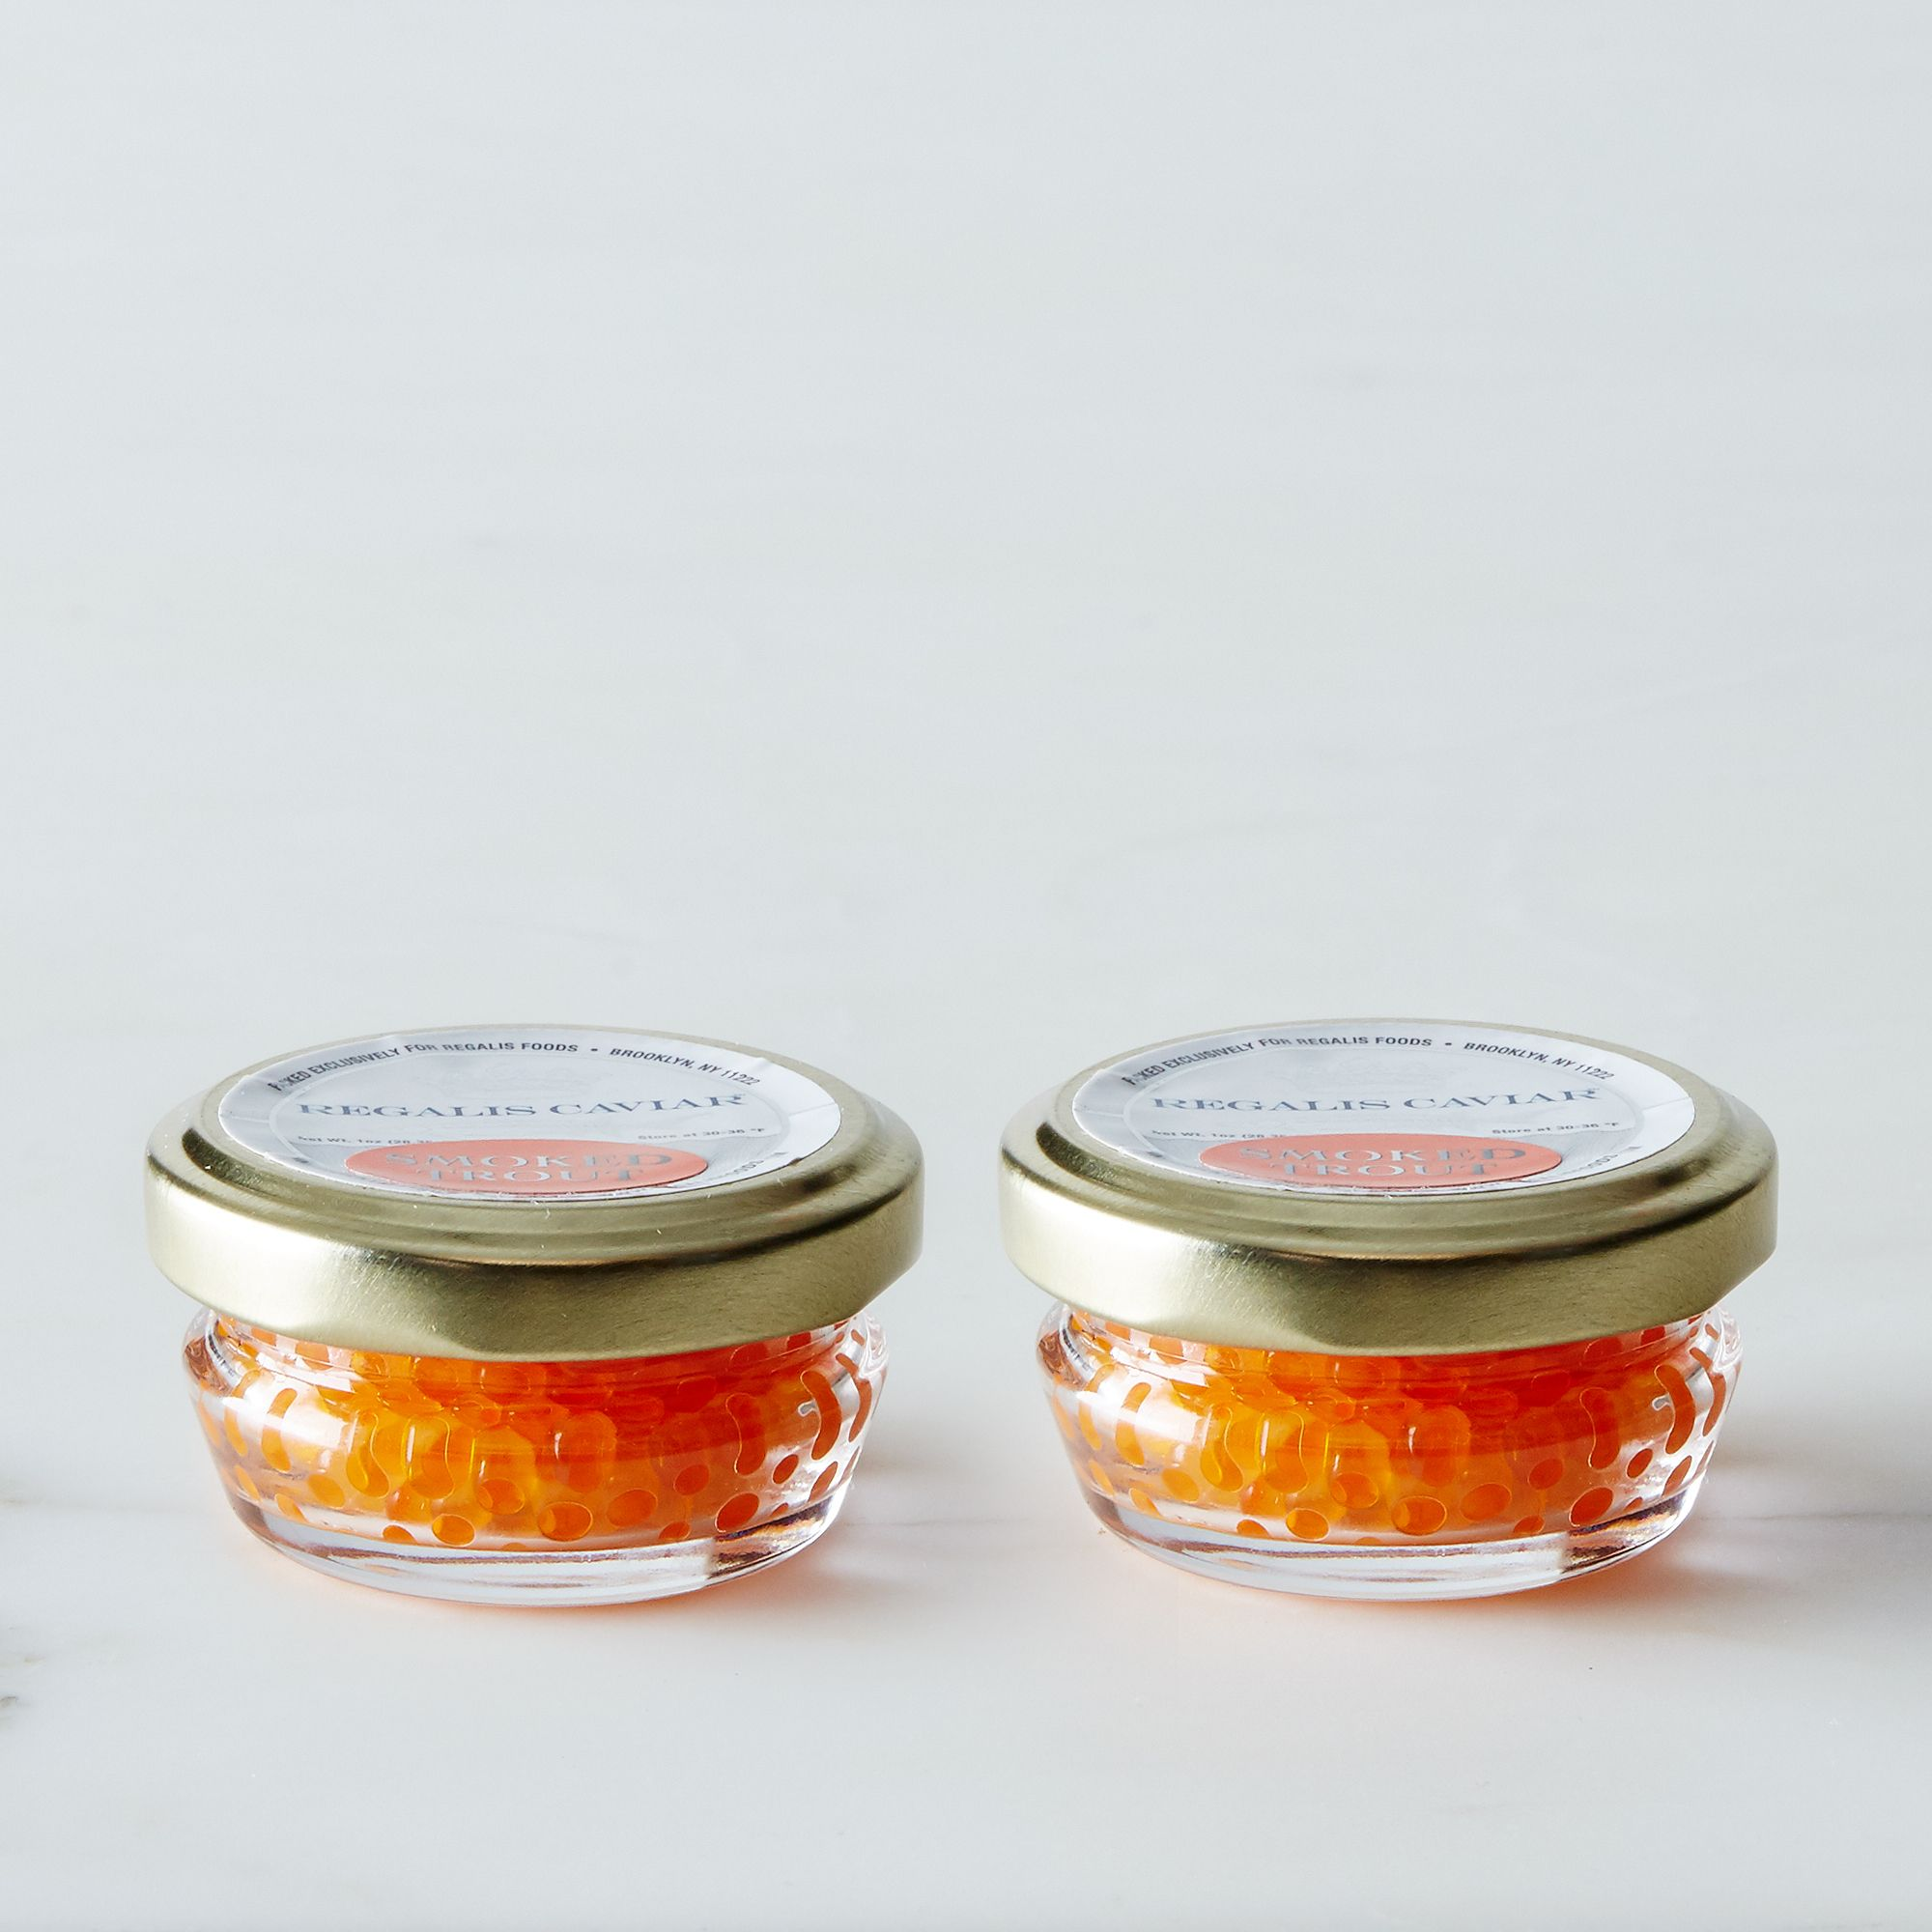 4c43ce80 a0f8 11e5 a190 0ef7535729df  2015 0506 regalis smoked trout roe 2oz set of 2 silo james ransom 002